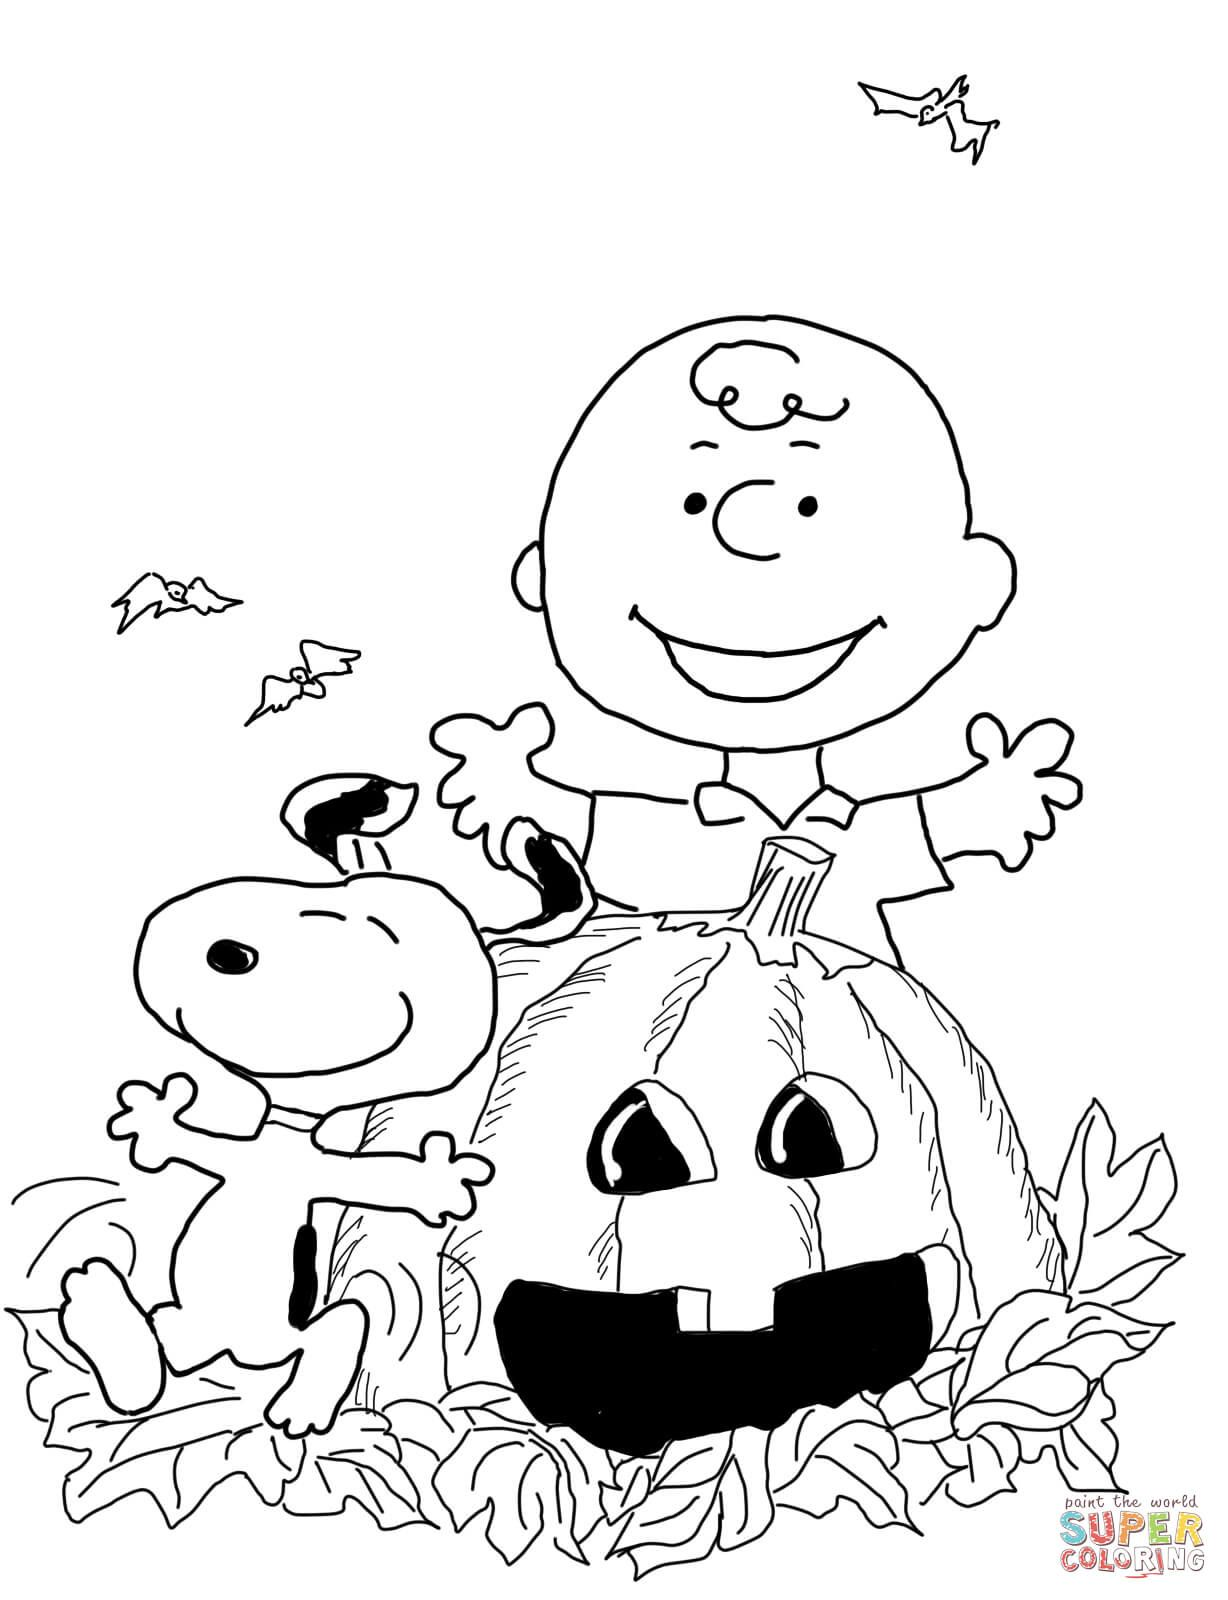 Charlie brown halloween coloring page from peanuts category select from 27278 printable crafts of cartoons nature animals bible and many more